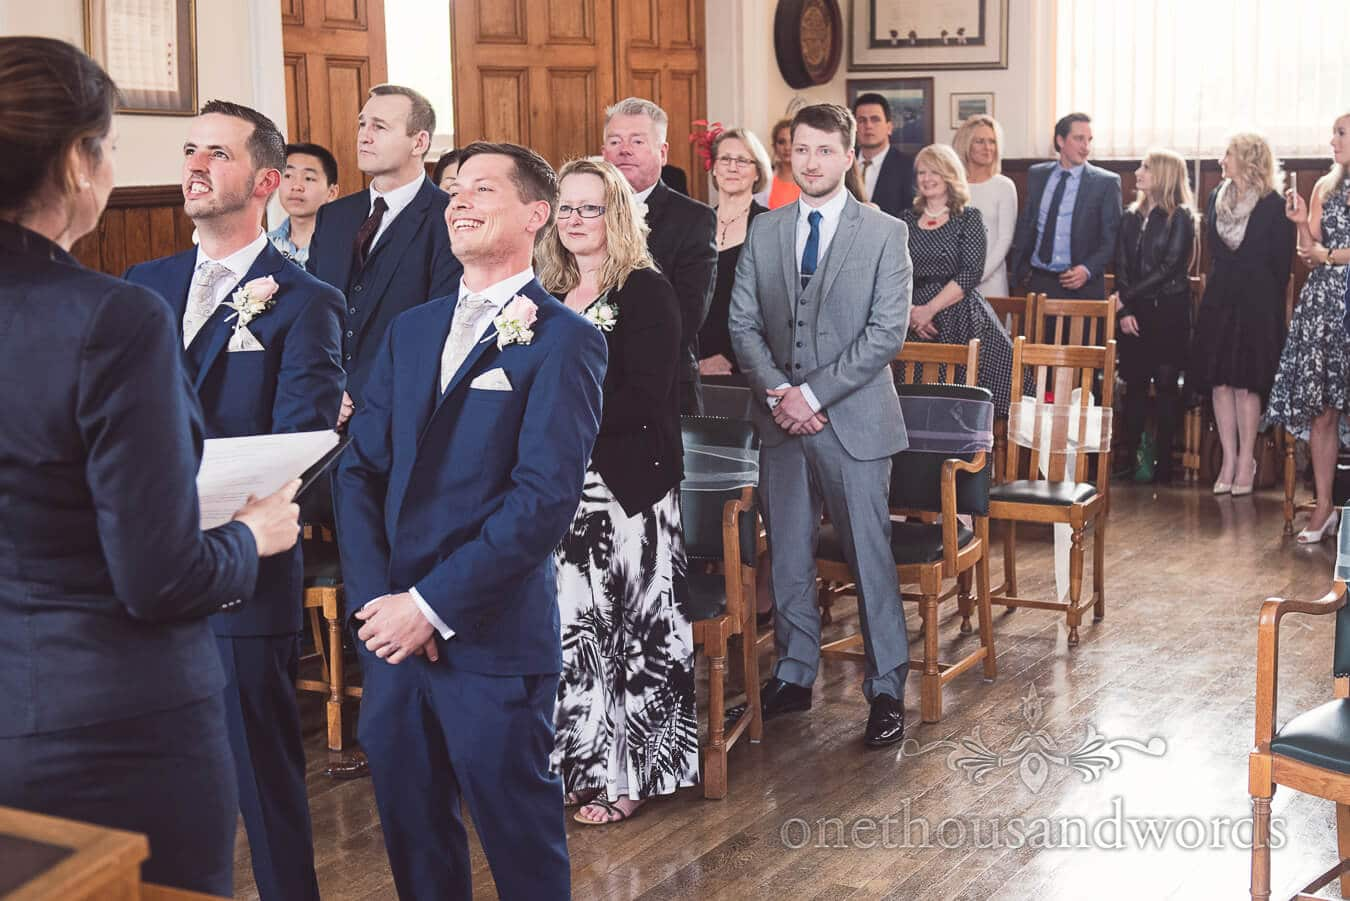 Laughs before civil ceremony at Swanage town hall